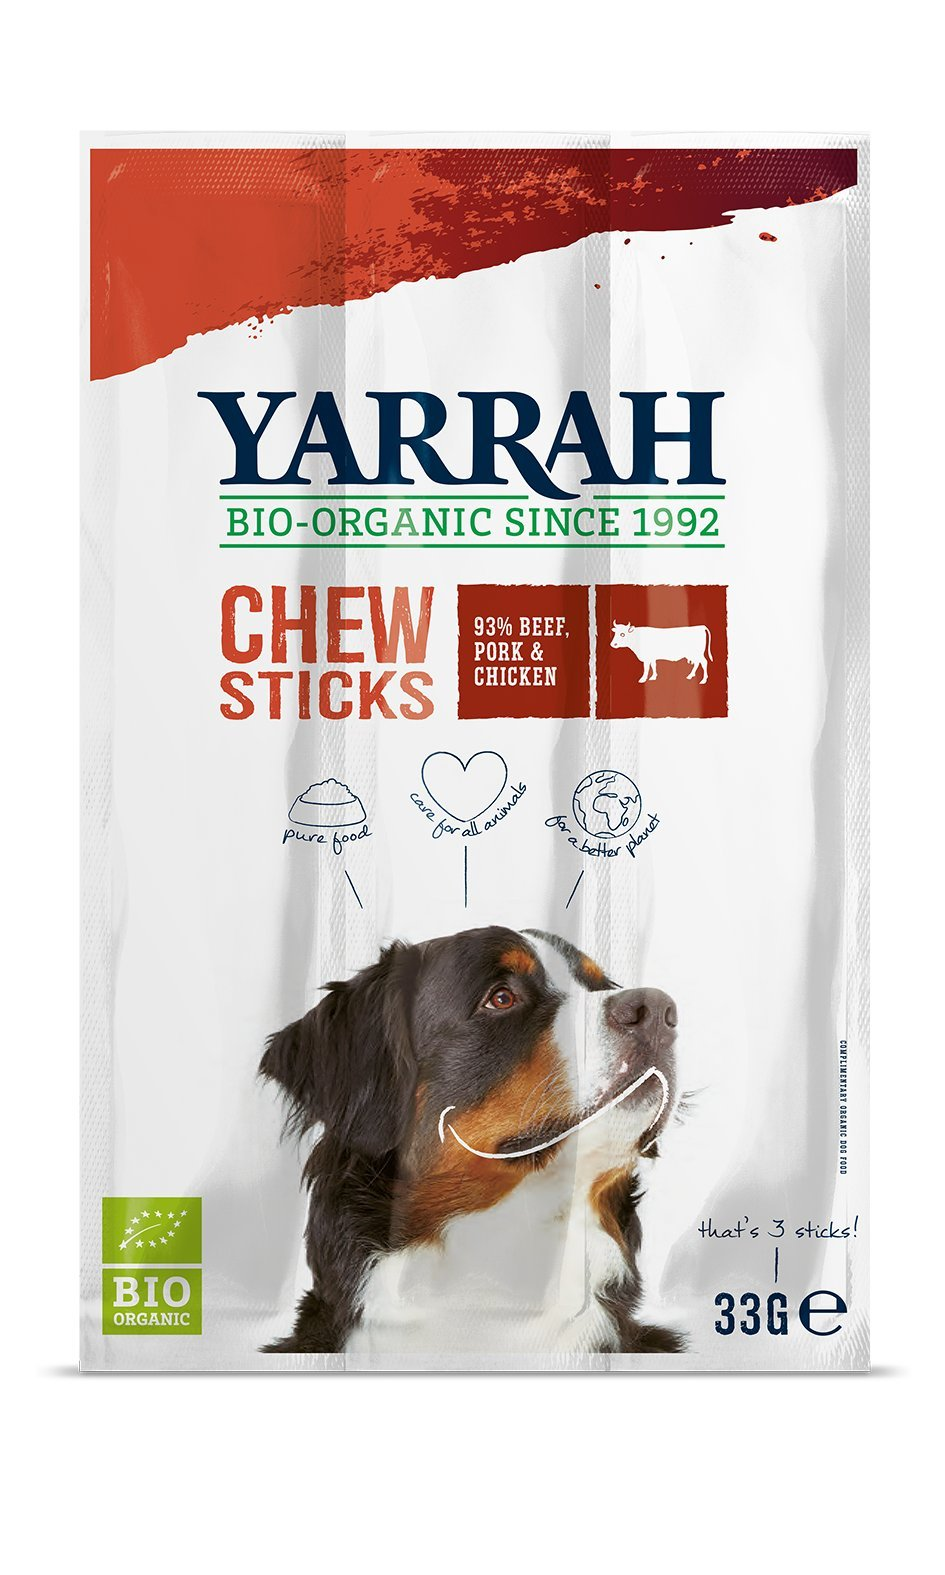 (4 PACK) - Yarrah Dog Chewsticks With Seaweed & Spirulina | 33g | 4 PACK - SUPER SAVER - SAVE MONEY